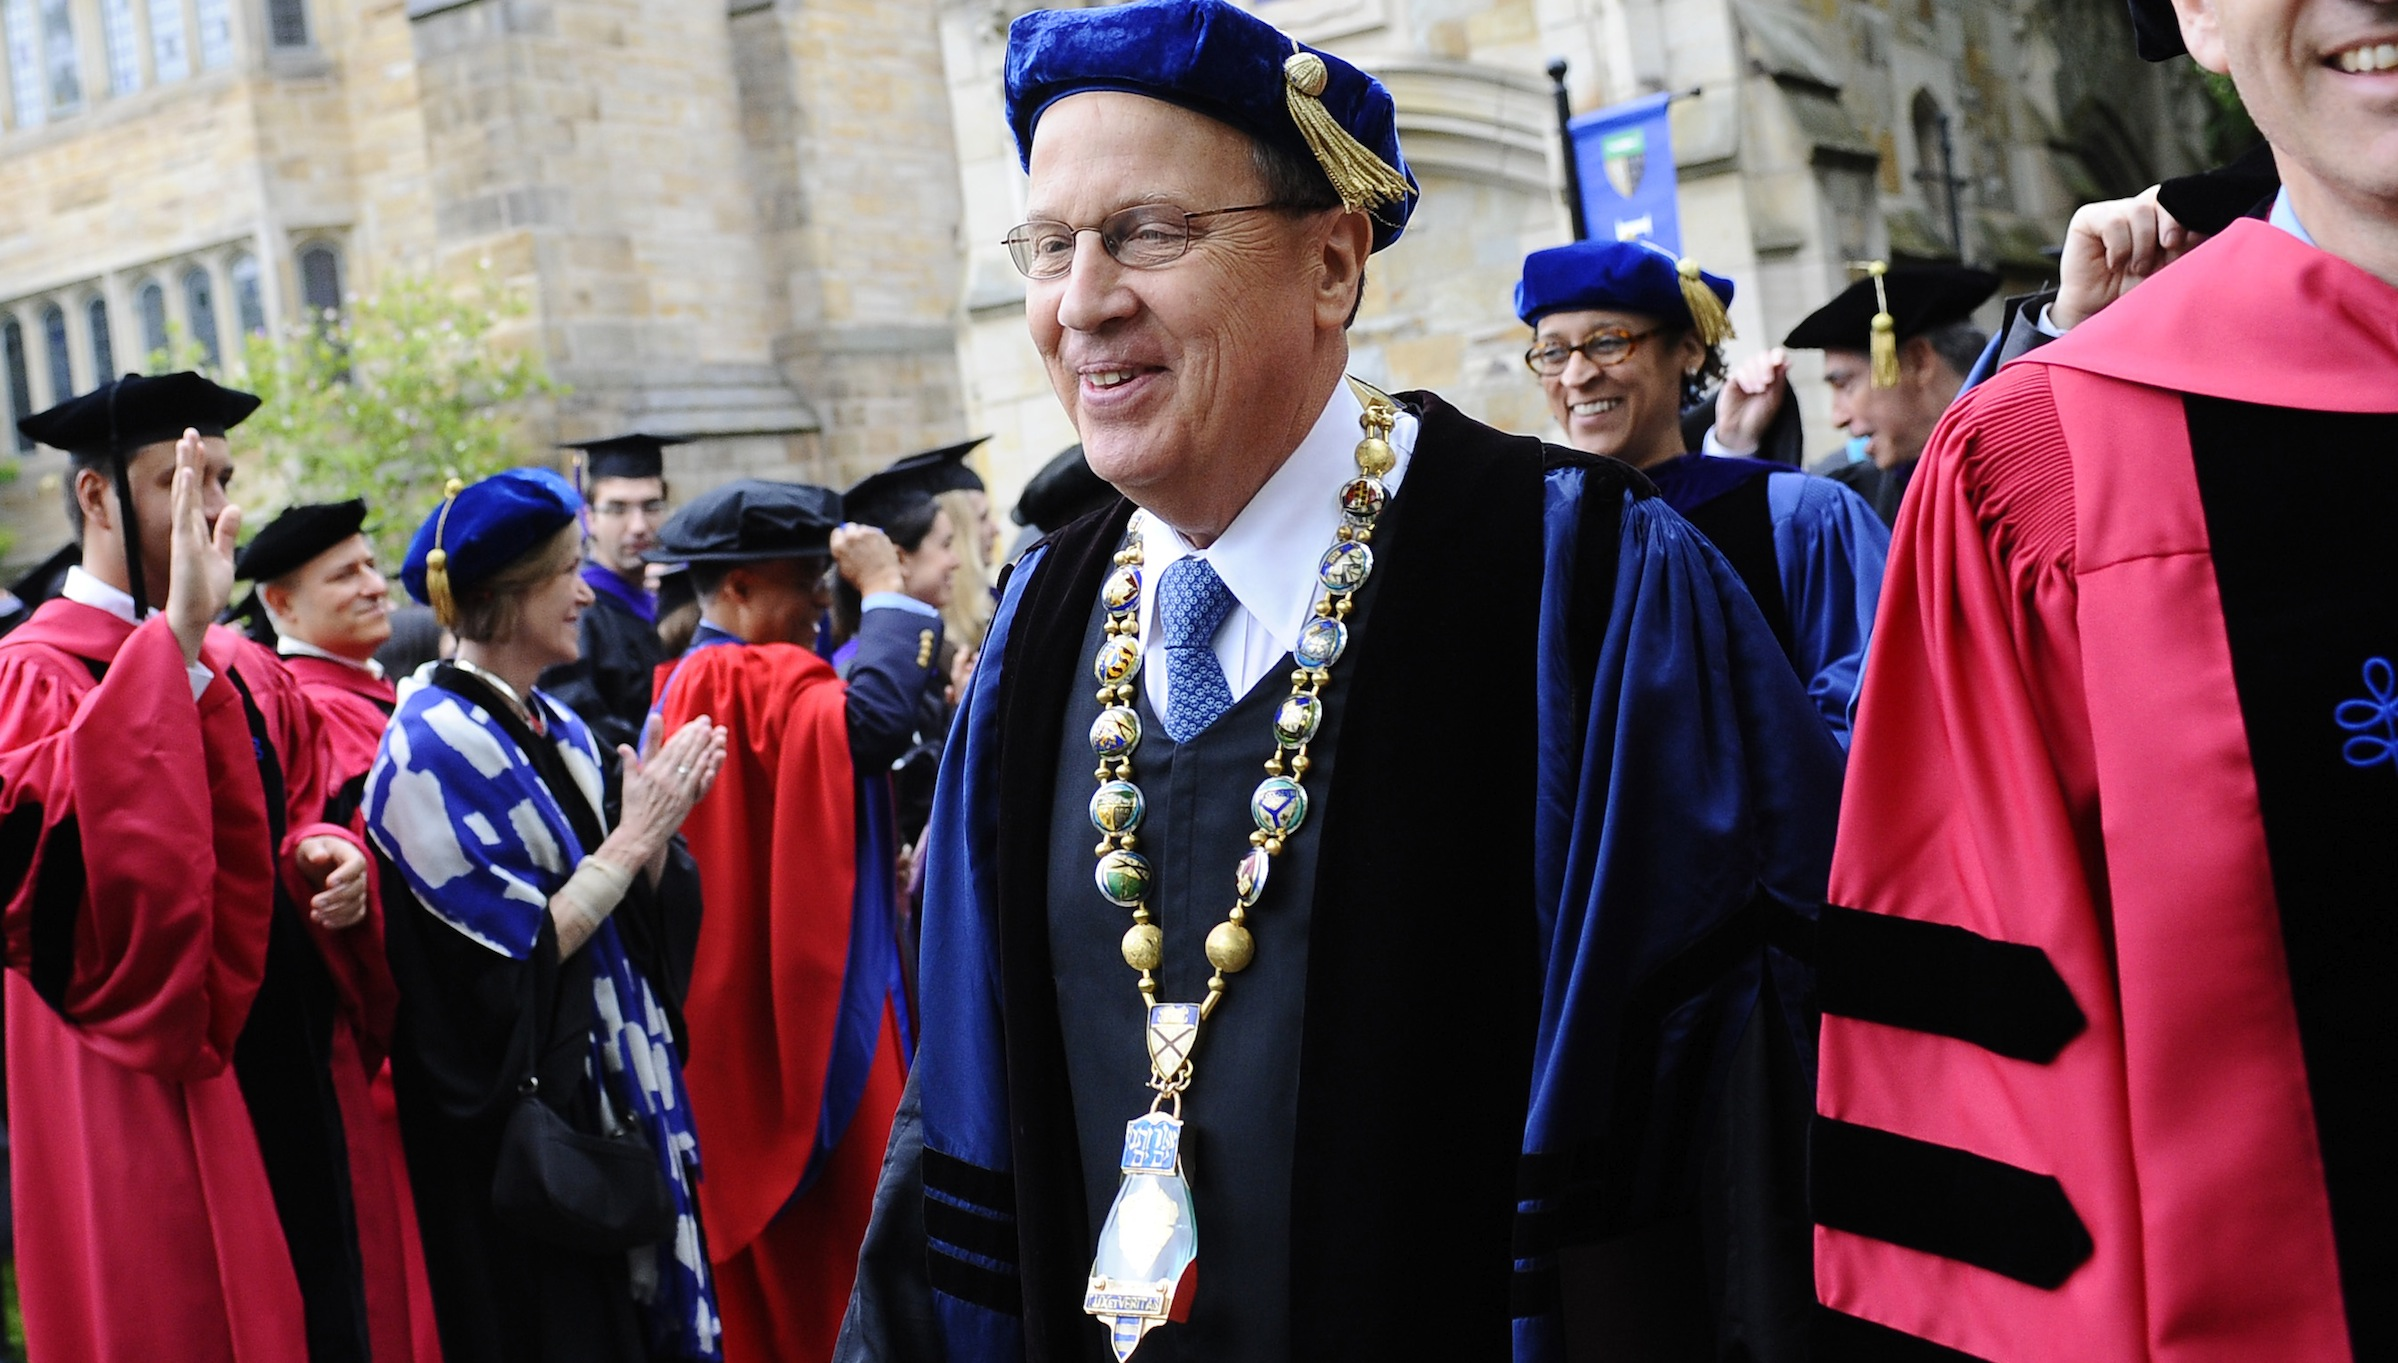 Yale President Richard Levin smiles as he walks in his final procession during commencement at Yale University in New Haven, Conn., Monday, May 20, 2013. Levin is retiring June 30th. (AP Photo/Jessica Hill)